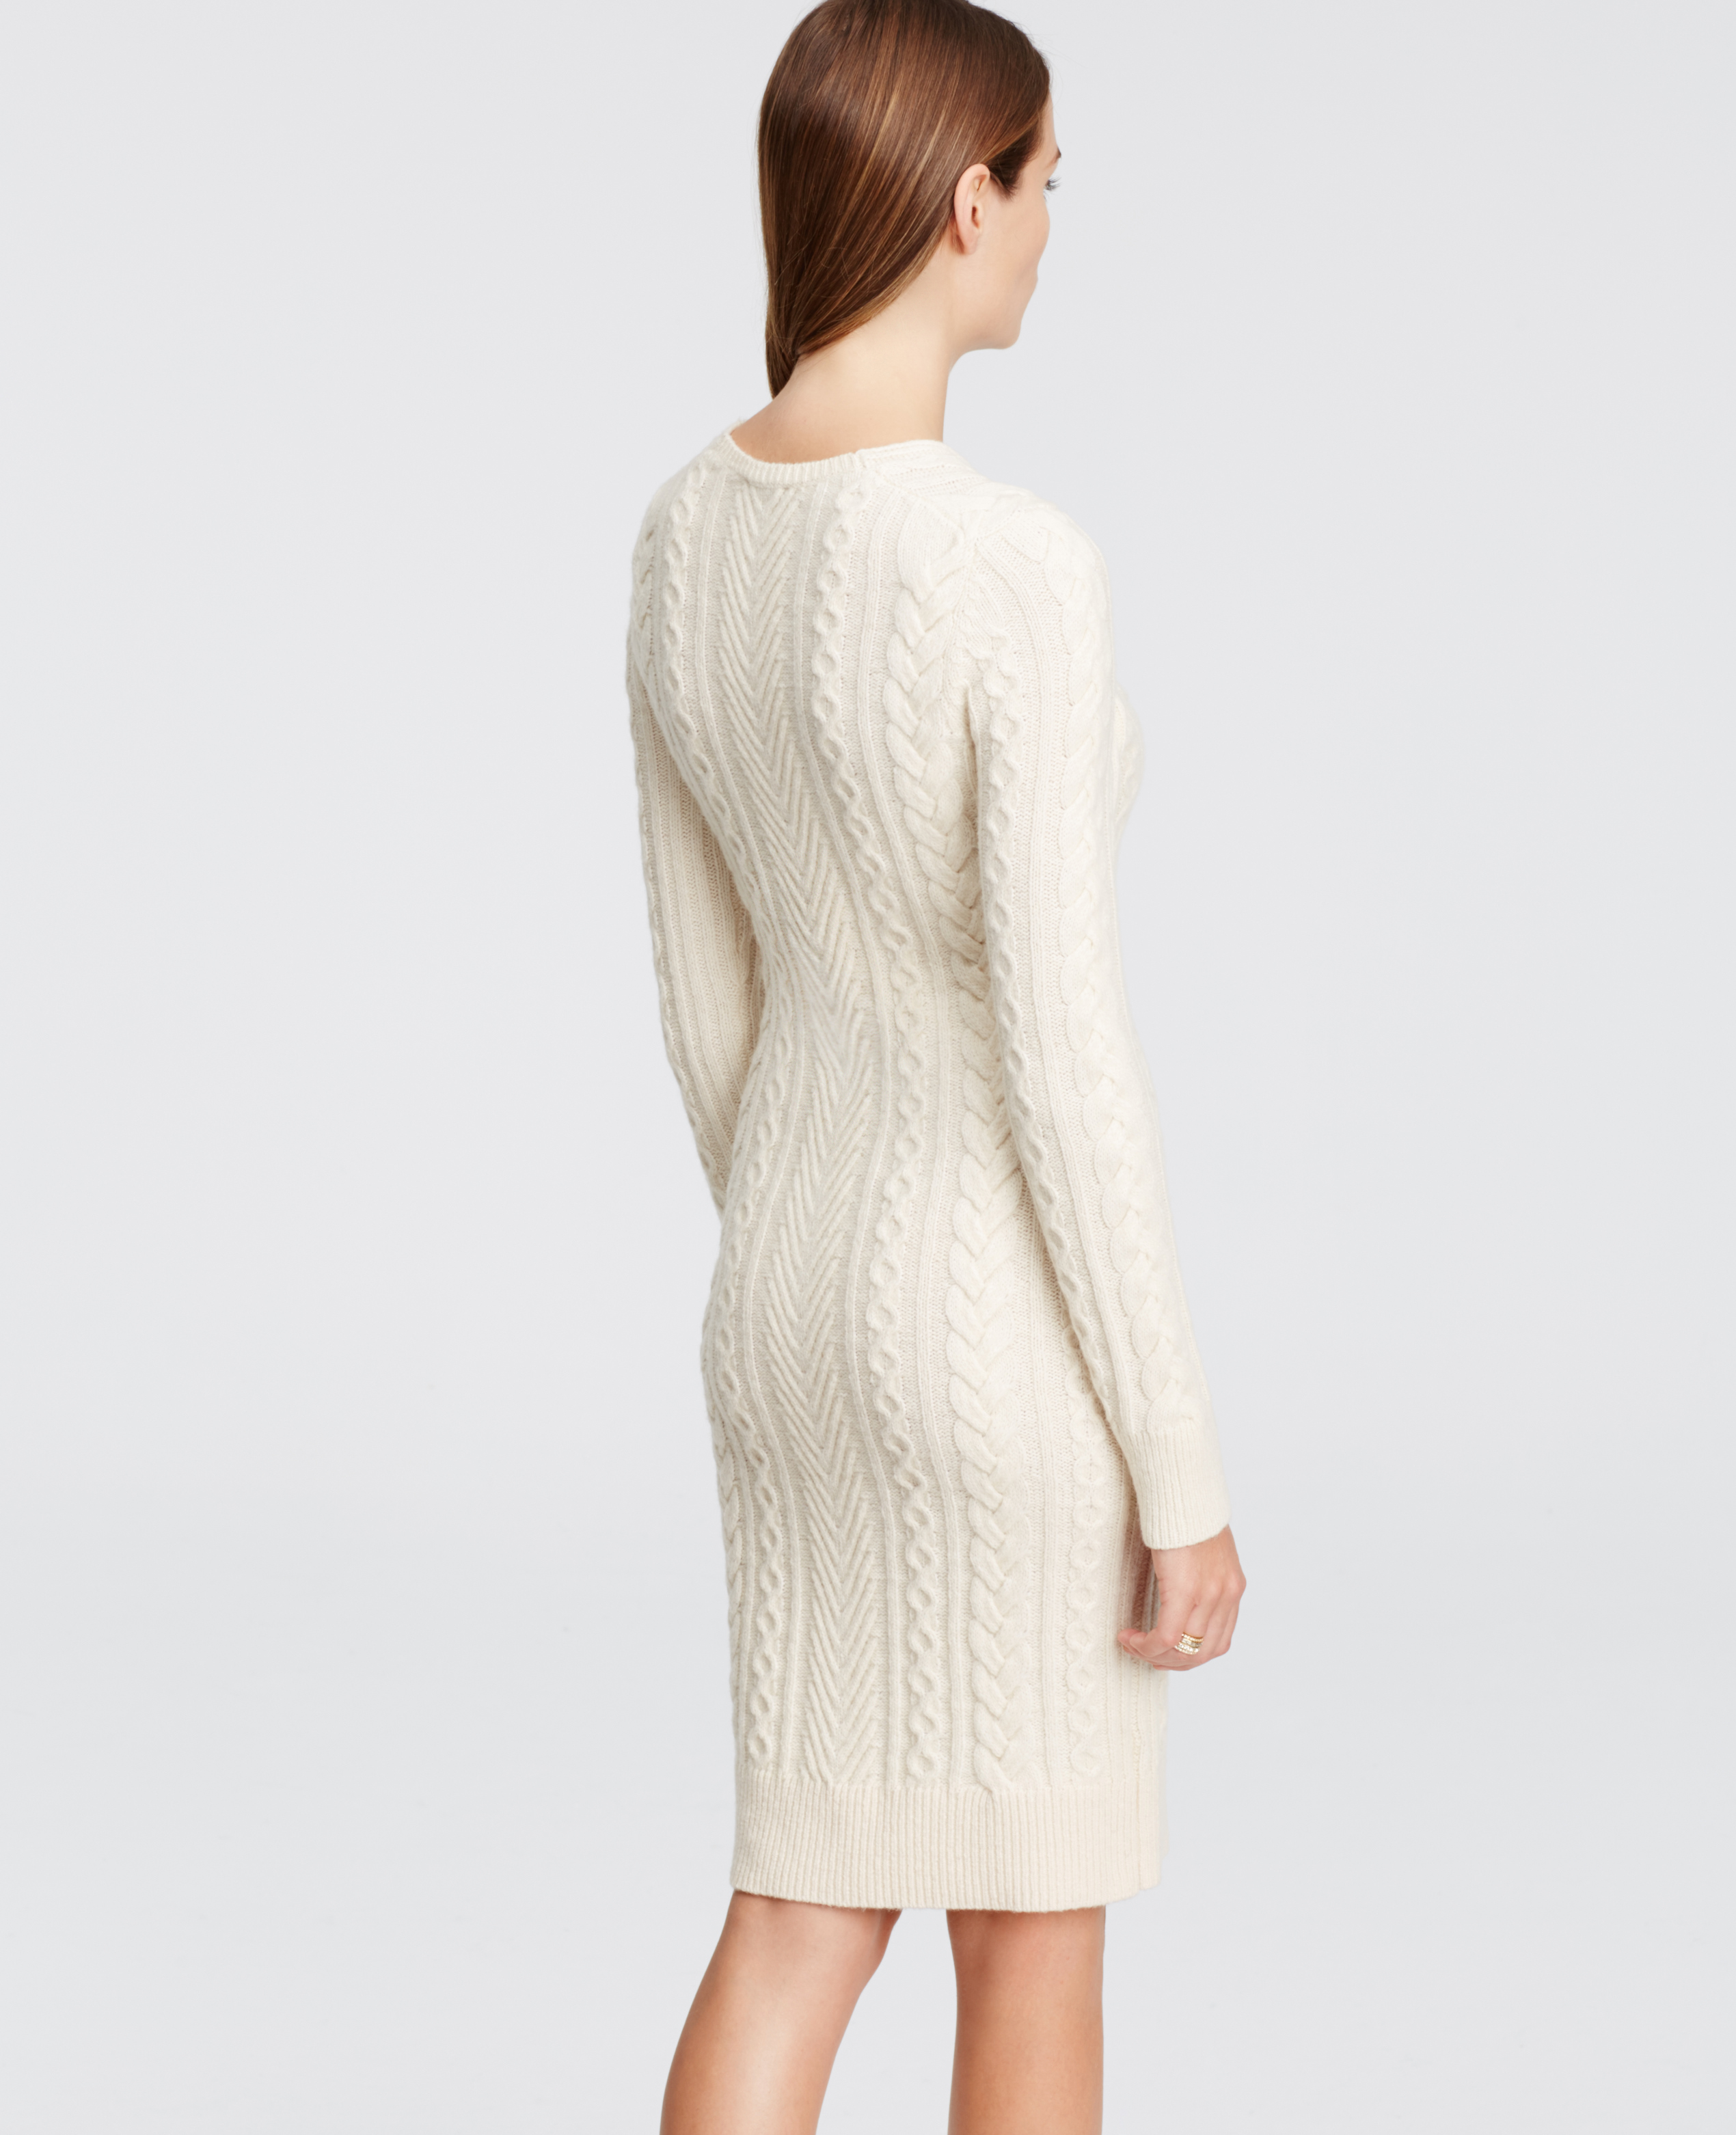 Ann taylor Petite V-neck Sweater Dress in Natural | Lyst